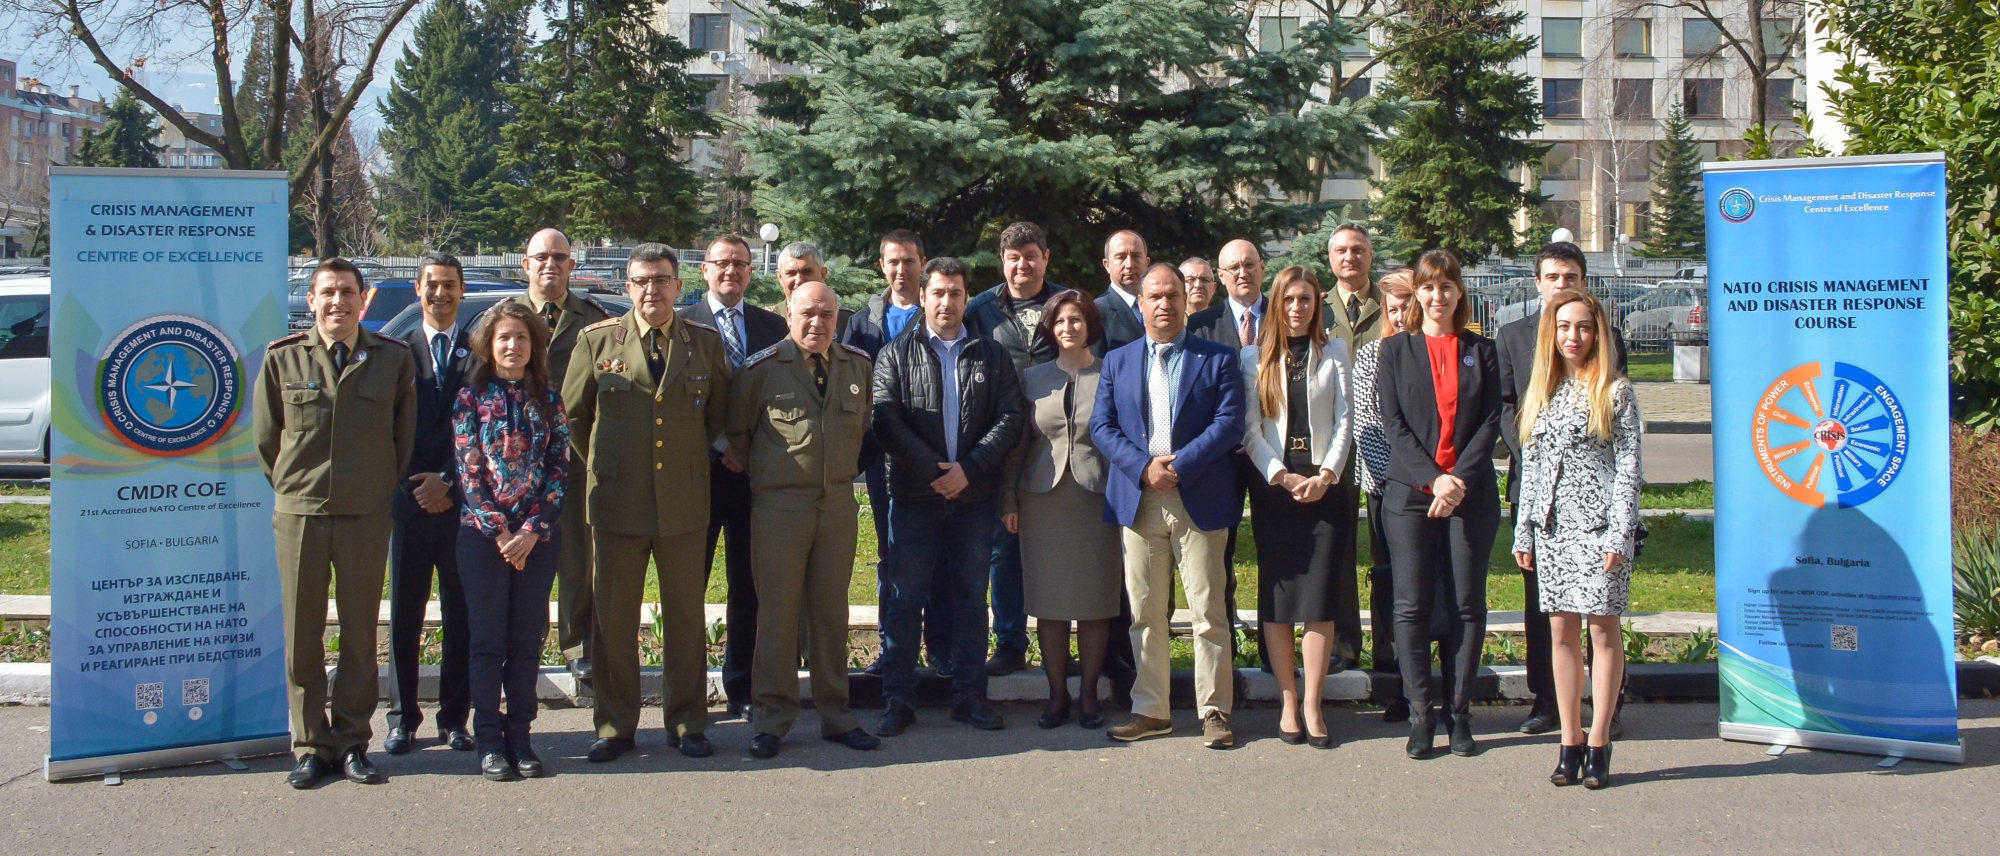 Five-day Crisis Management and Disaster Response Course was successfully conducted